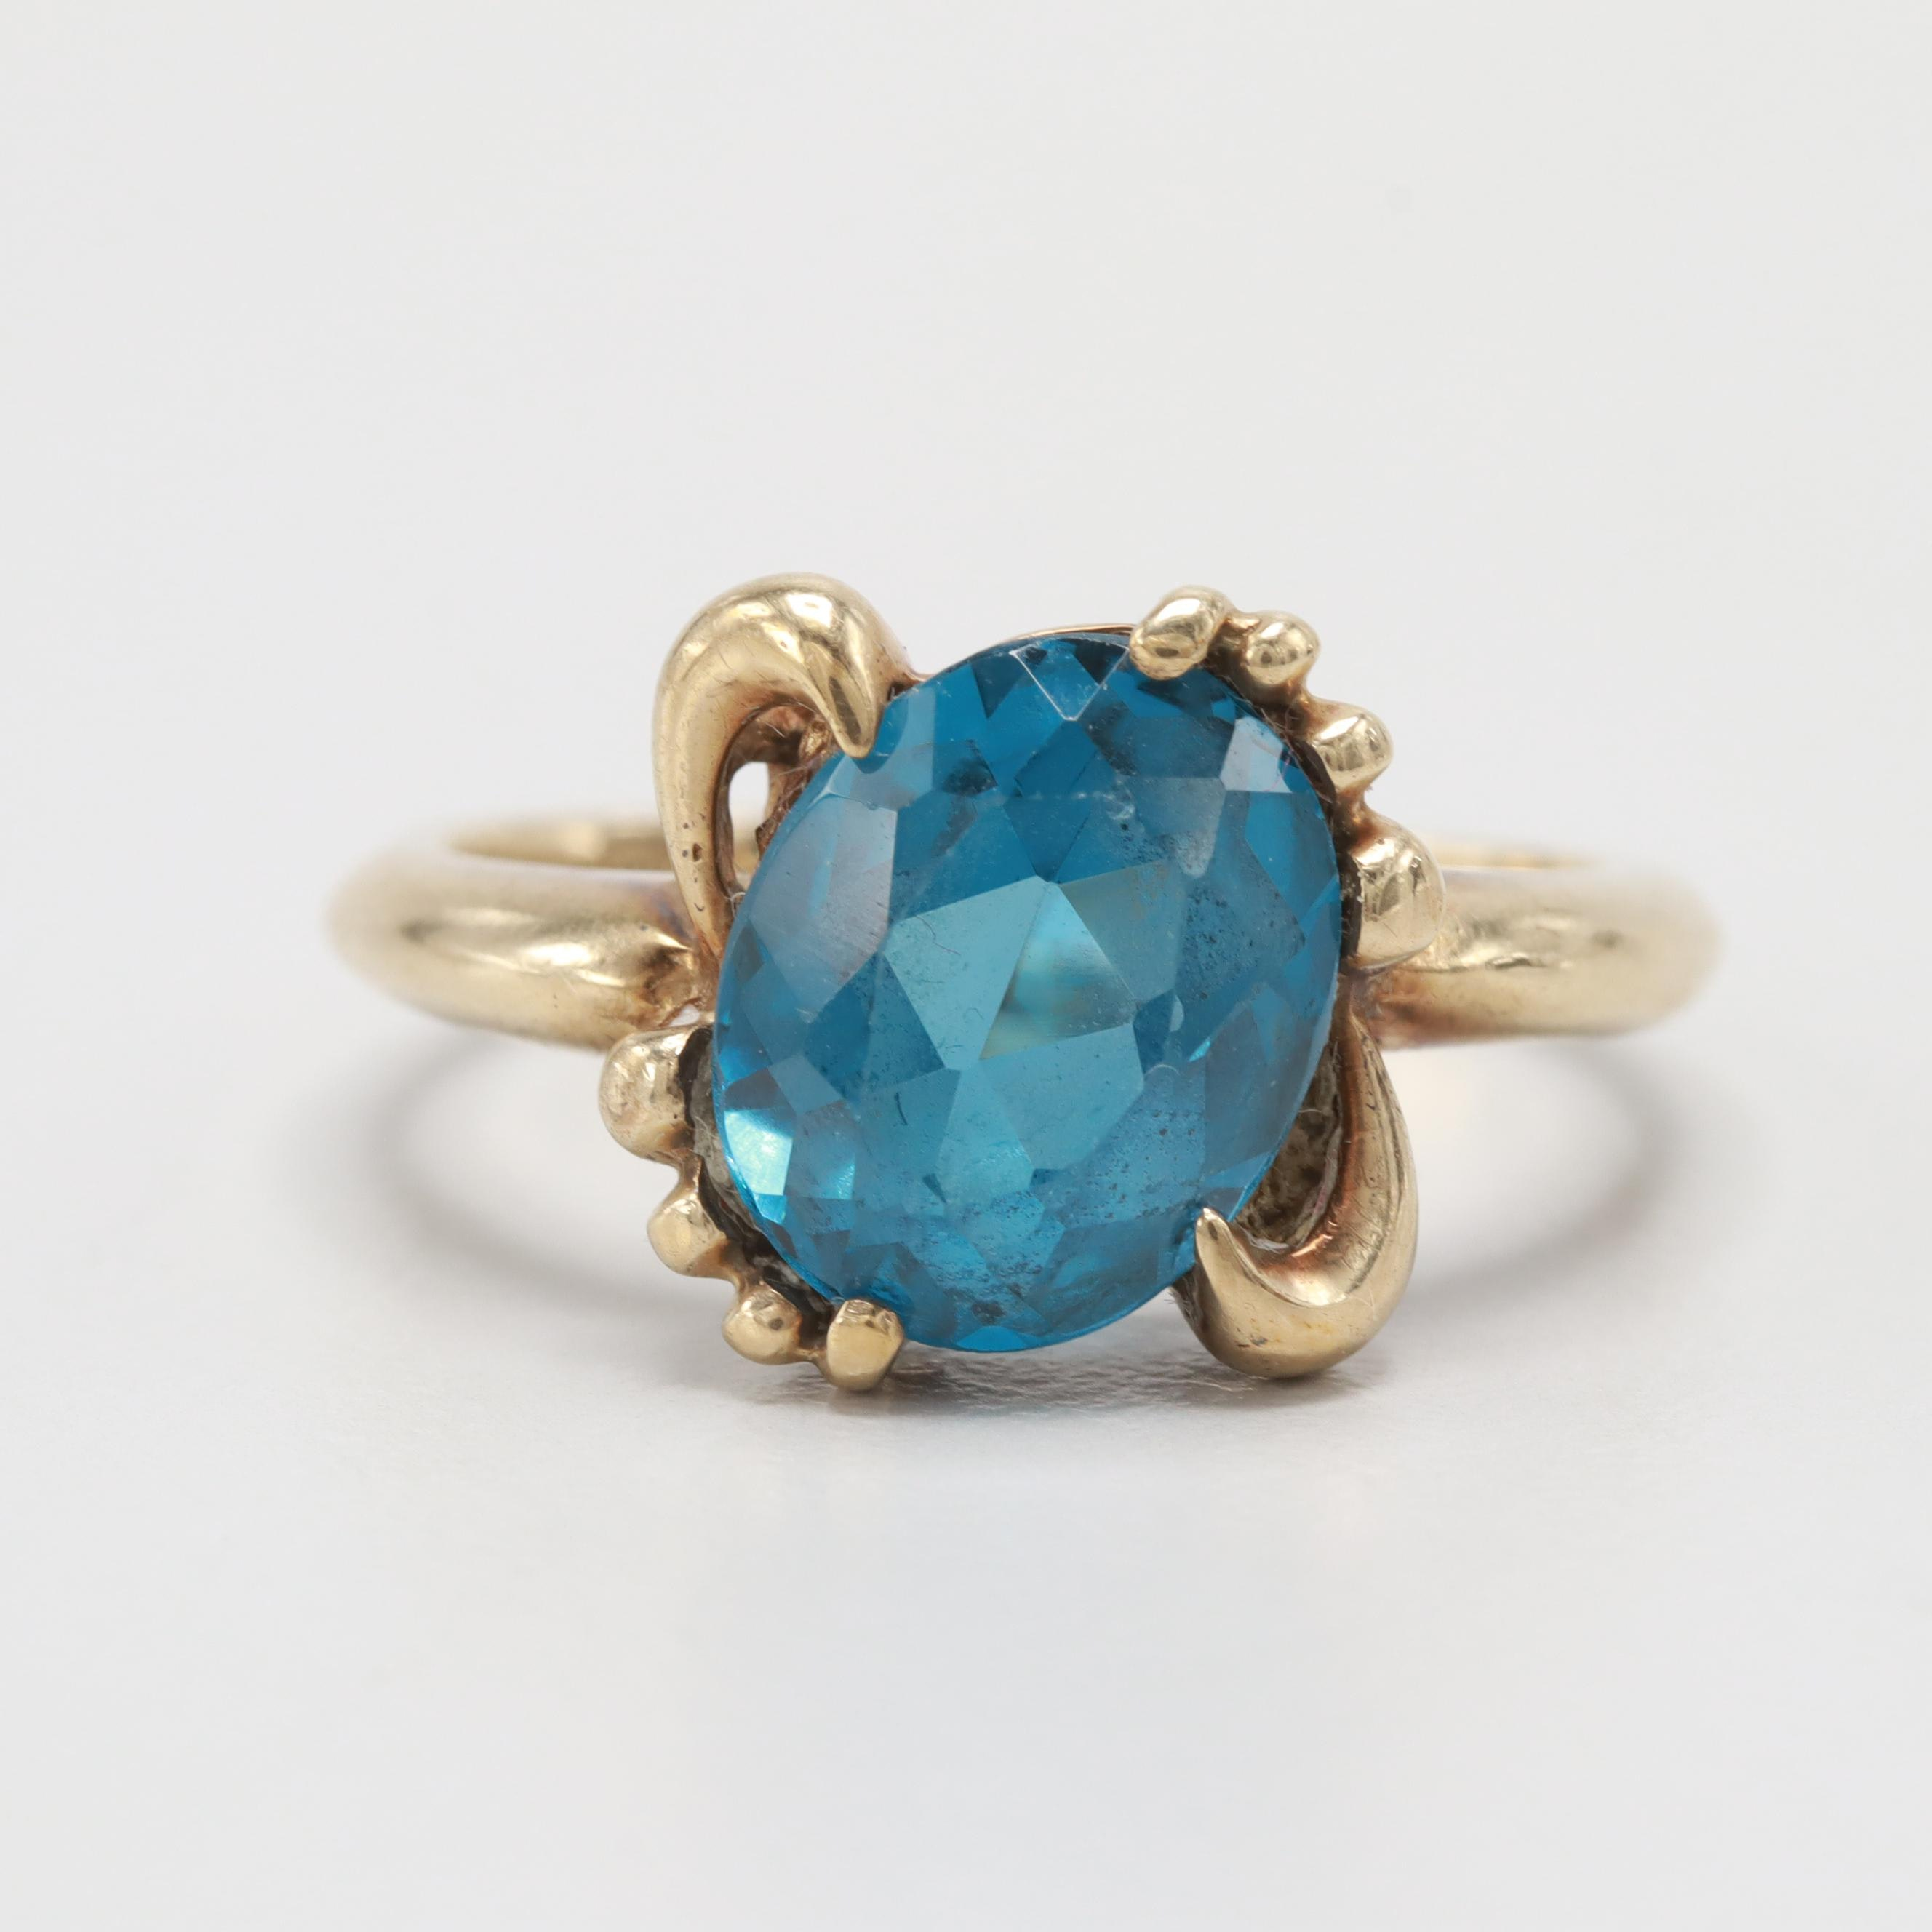 10K Yellow Gold Synthetic Spinel Ring